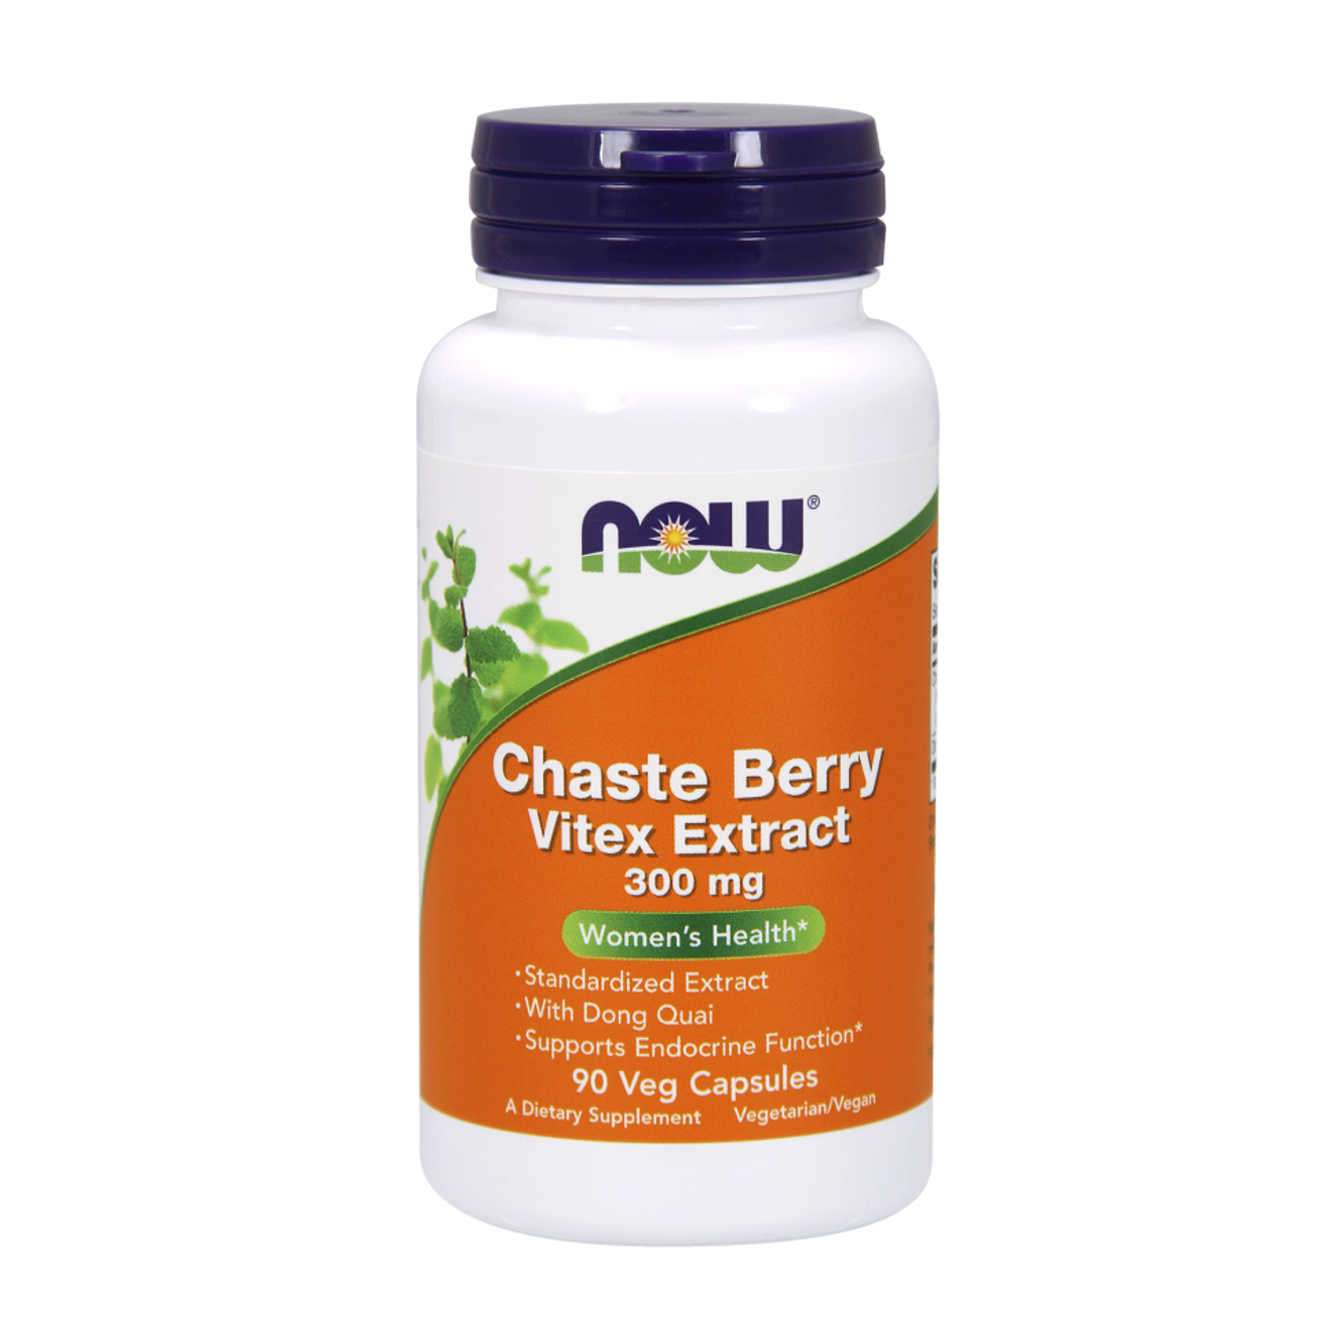 CHASTE BERRY VITEX EXTRACT 300mg - 90 veg caps